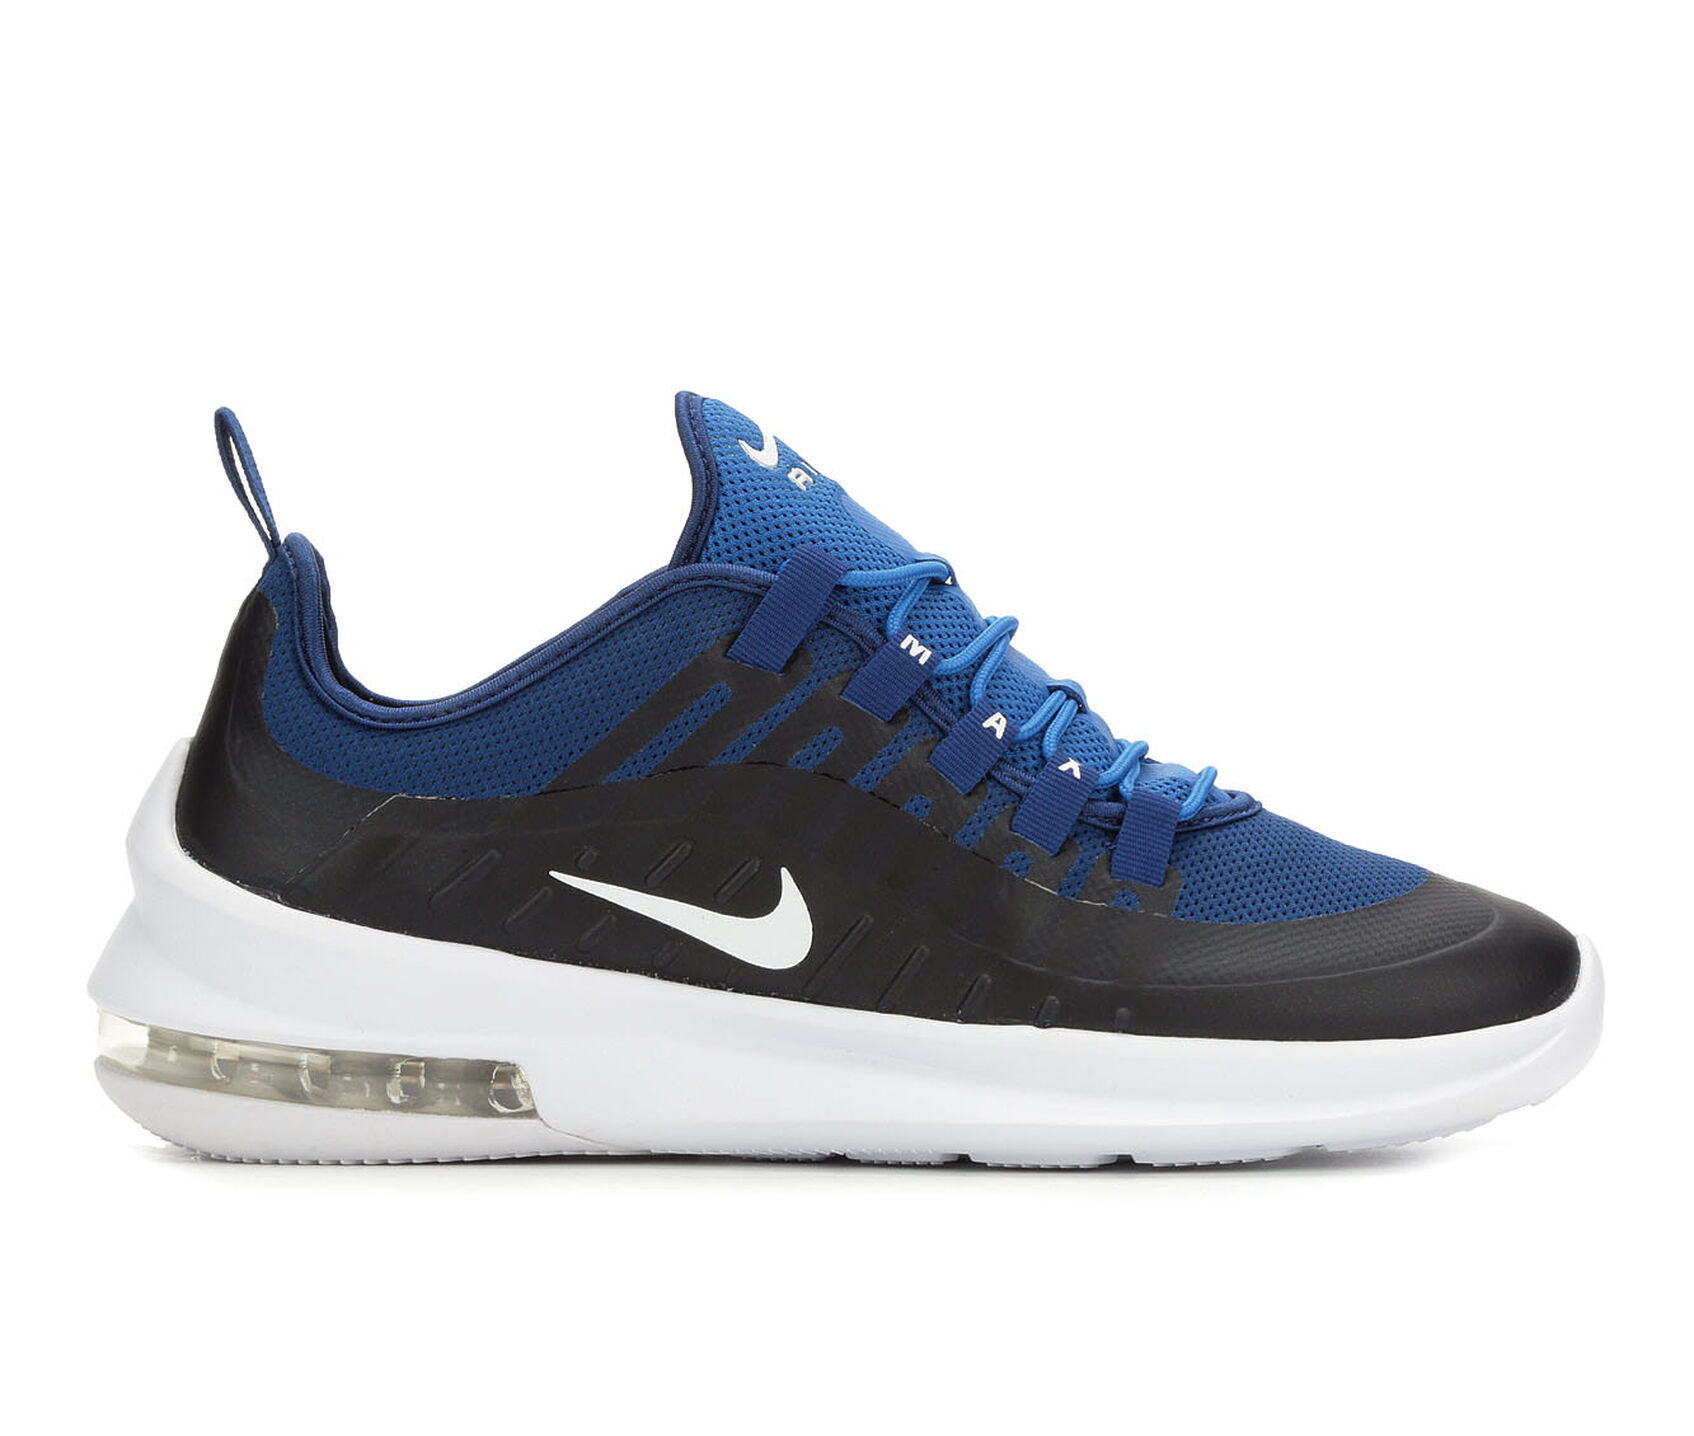 f181ff73d0 Men's Nike Air Max Axis Running Shoes | Shoe Carnival